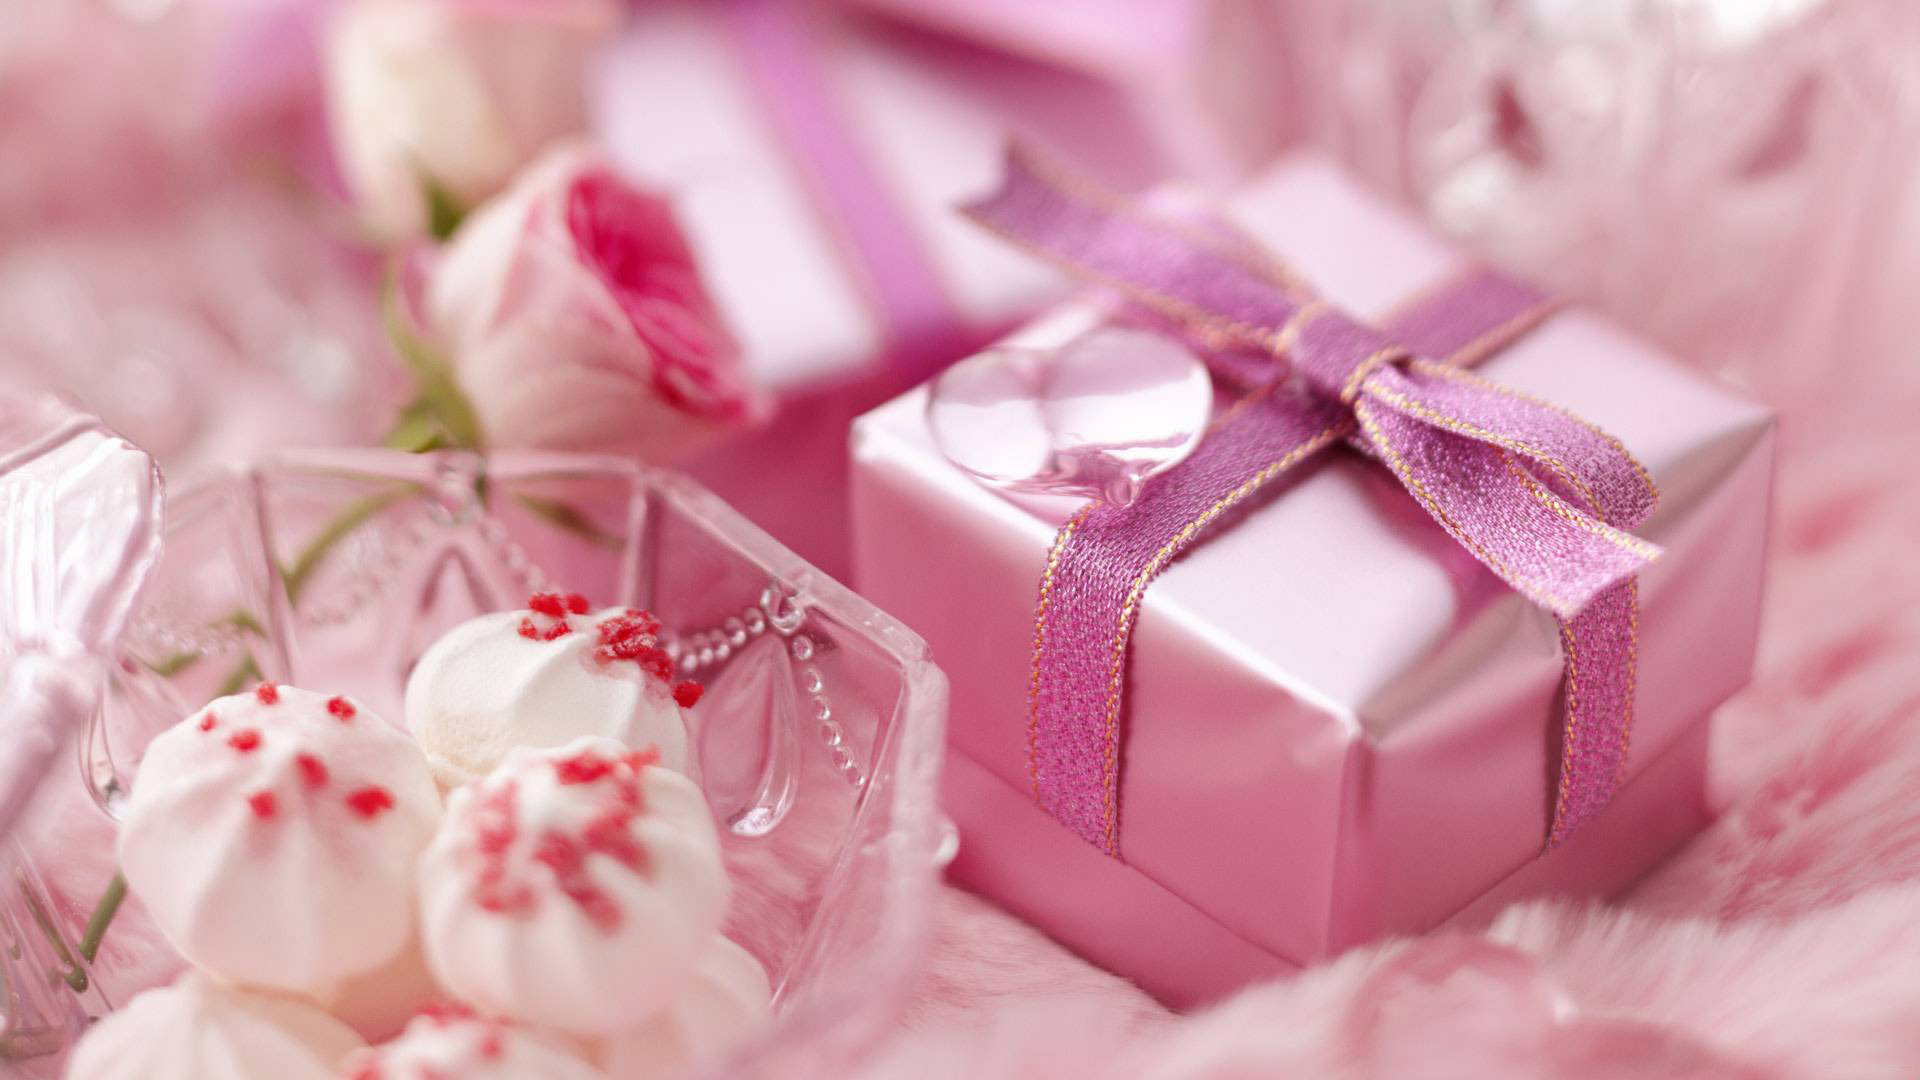 Pretty Gift Wallpaper 40093 1680x1050 px